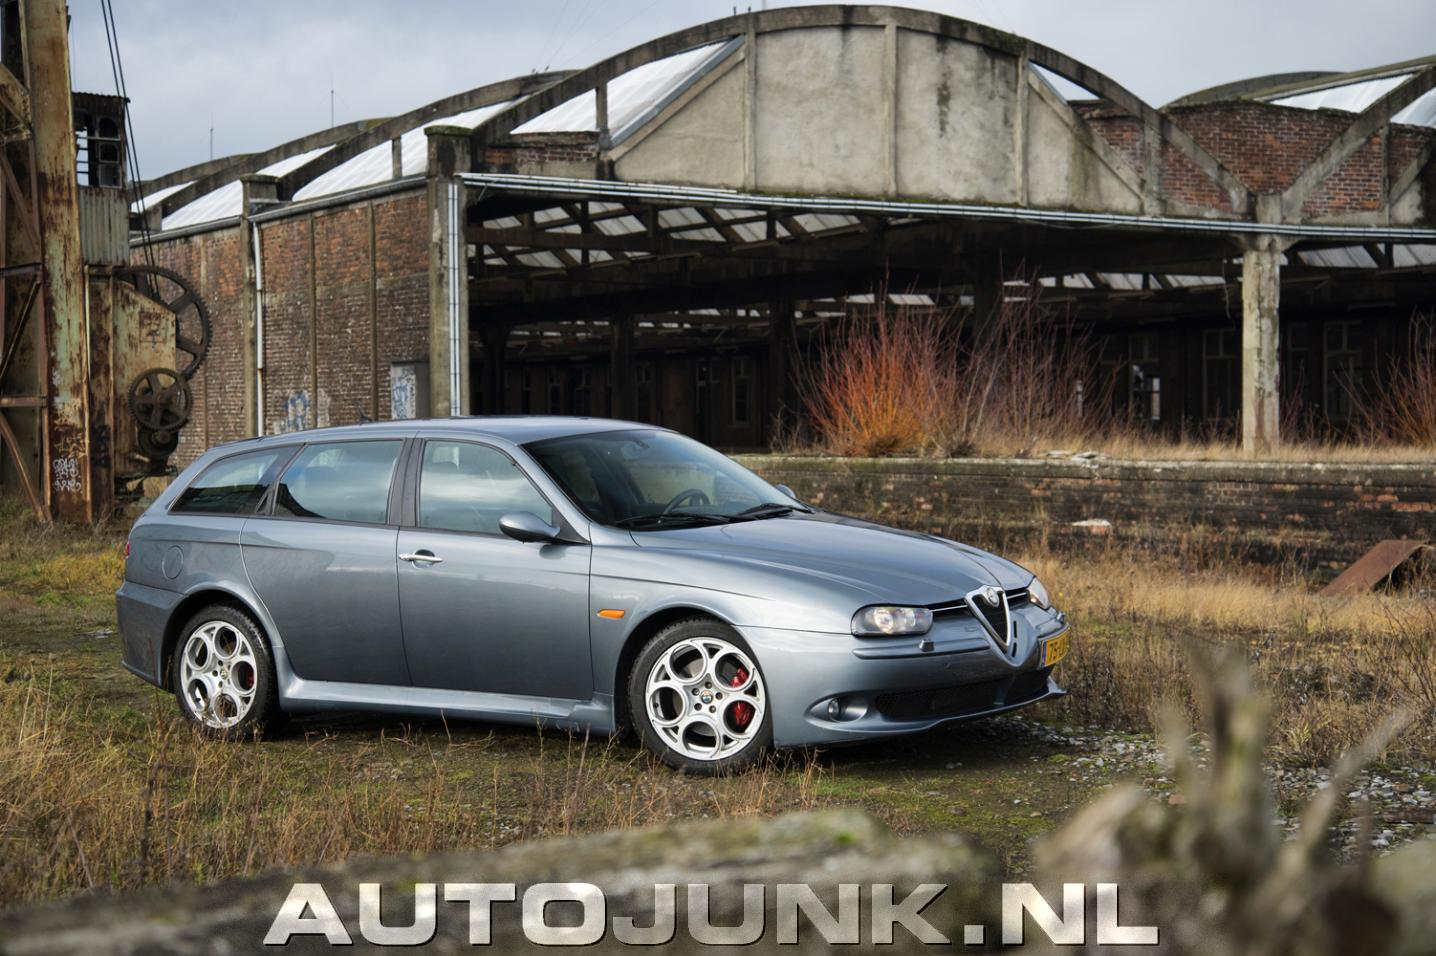 alfa romeo 156 gta sportwagon foto 39 s 111766. Black Bedroom Furniture Sets. Home Design Ideas